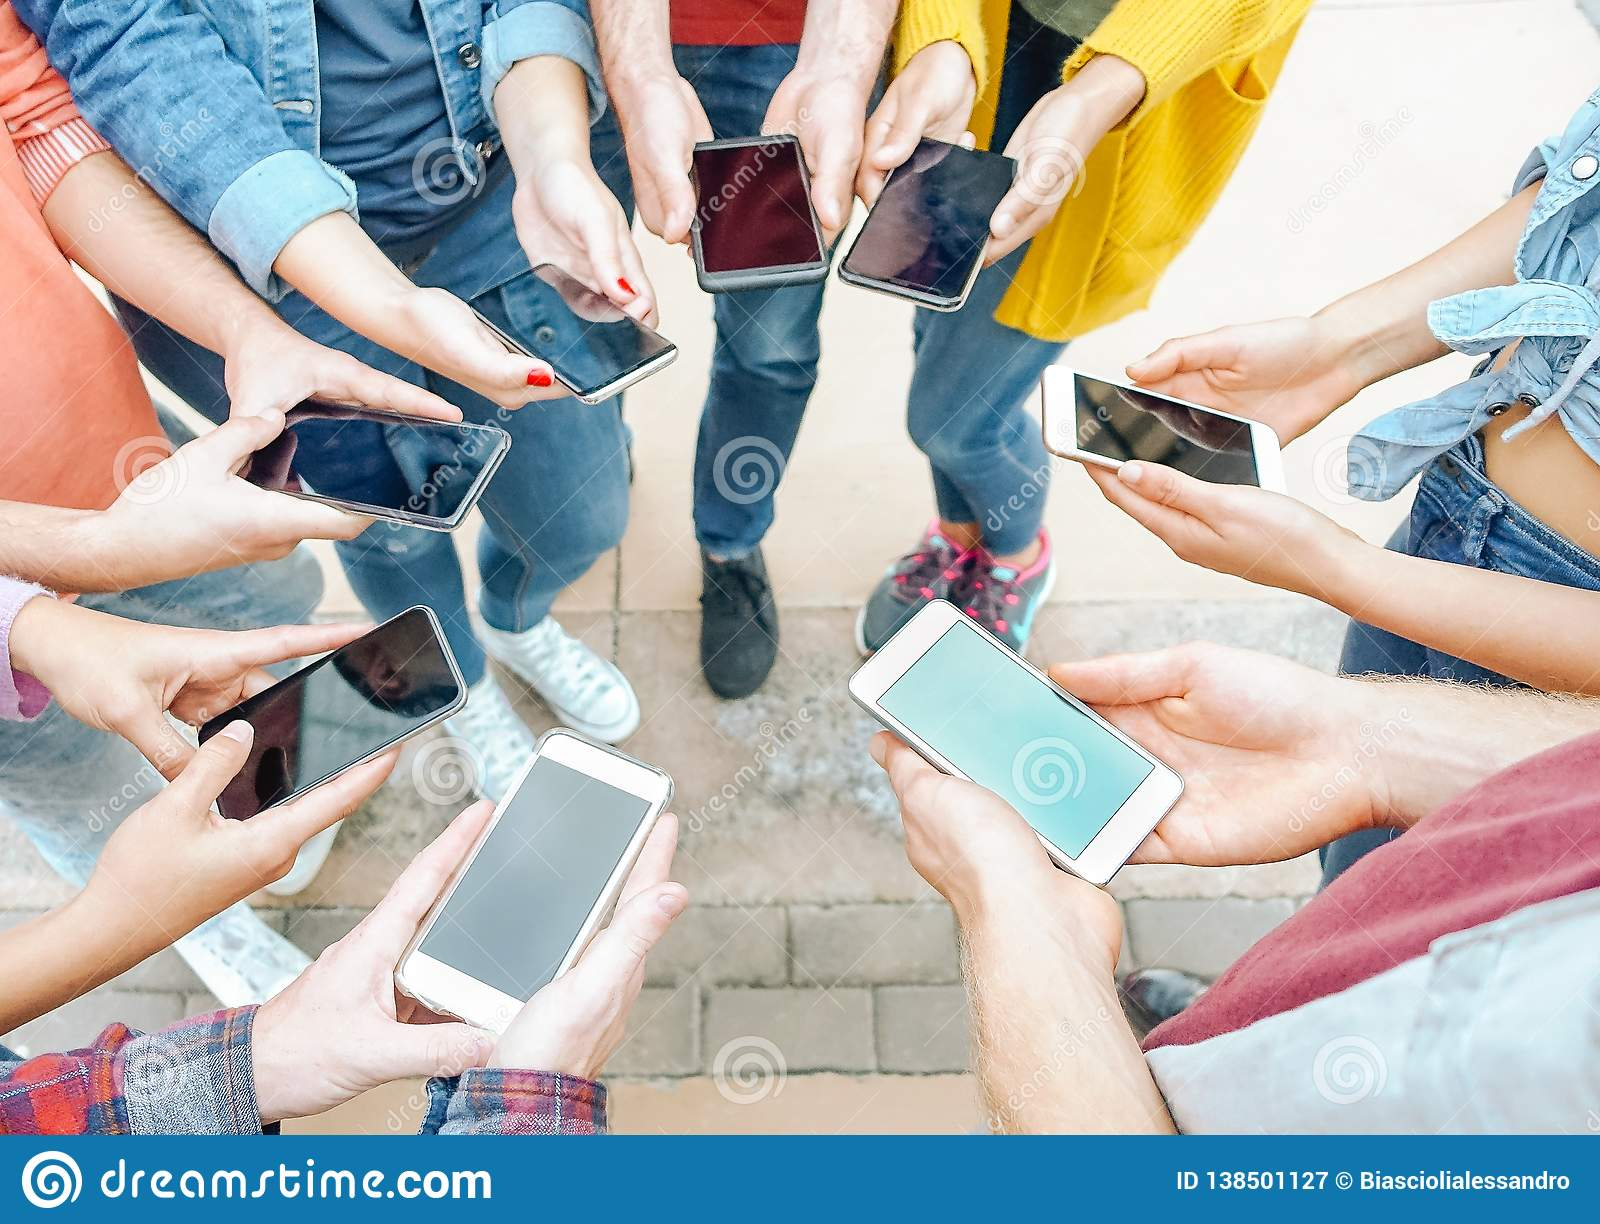 Group of friends using their smart mobile phones - Millennial young people addicted to new technology trends